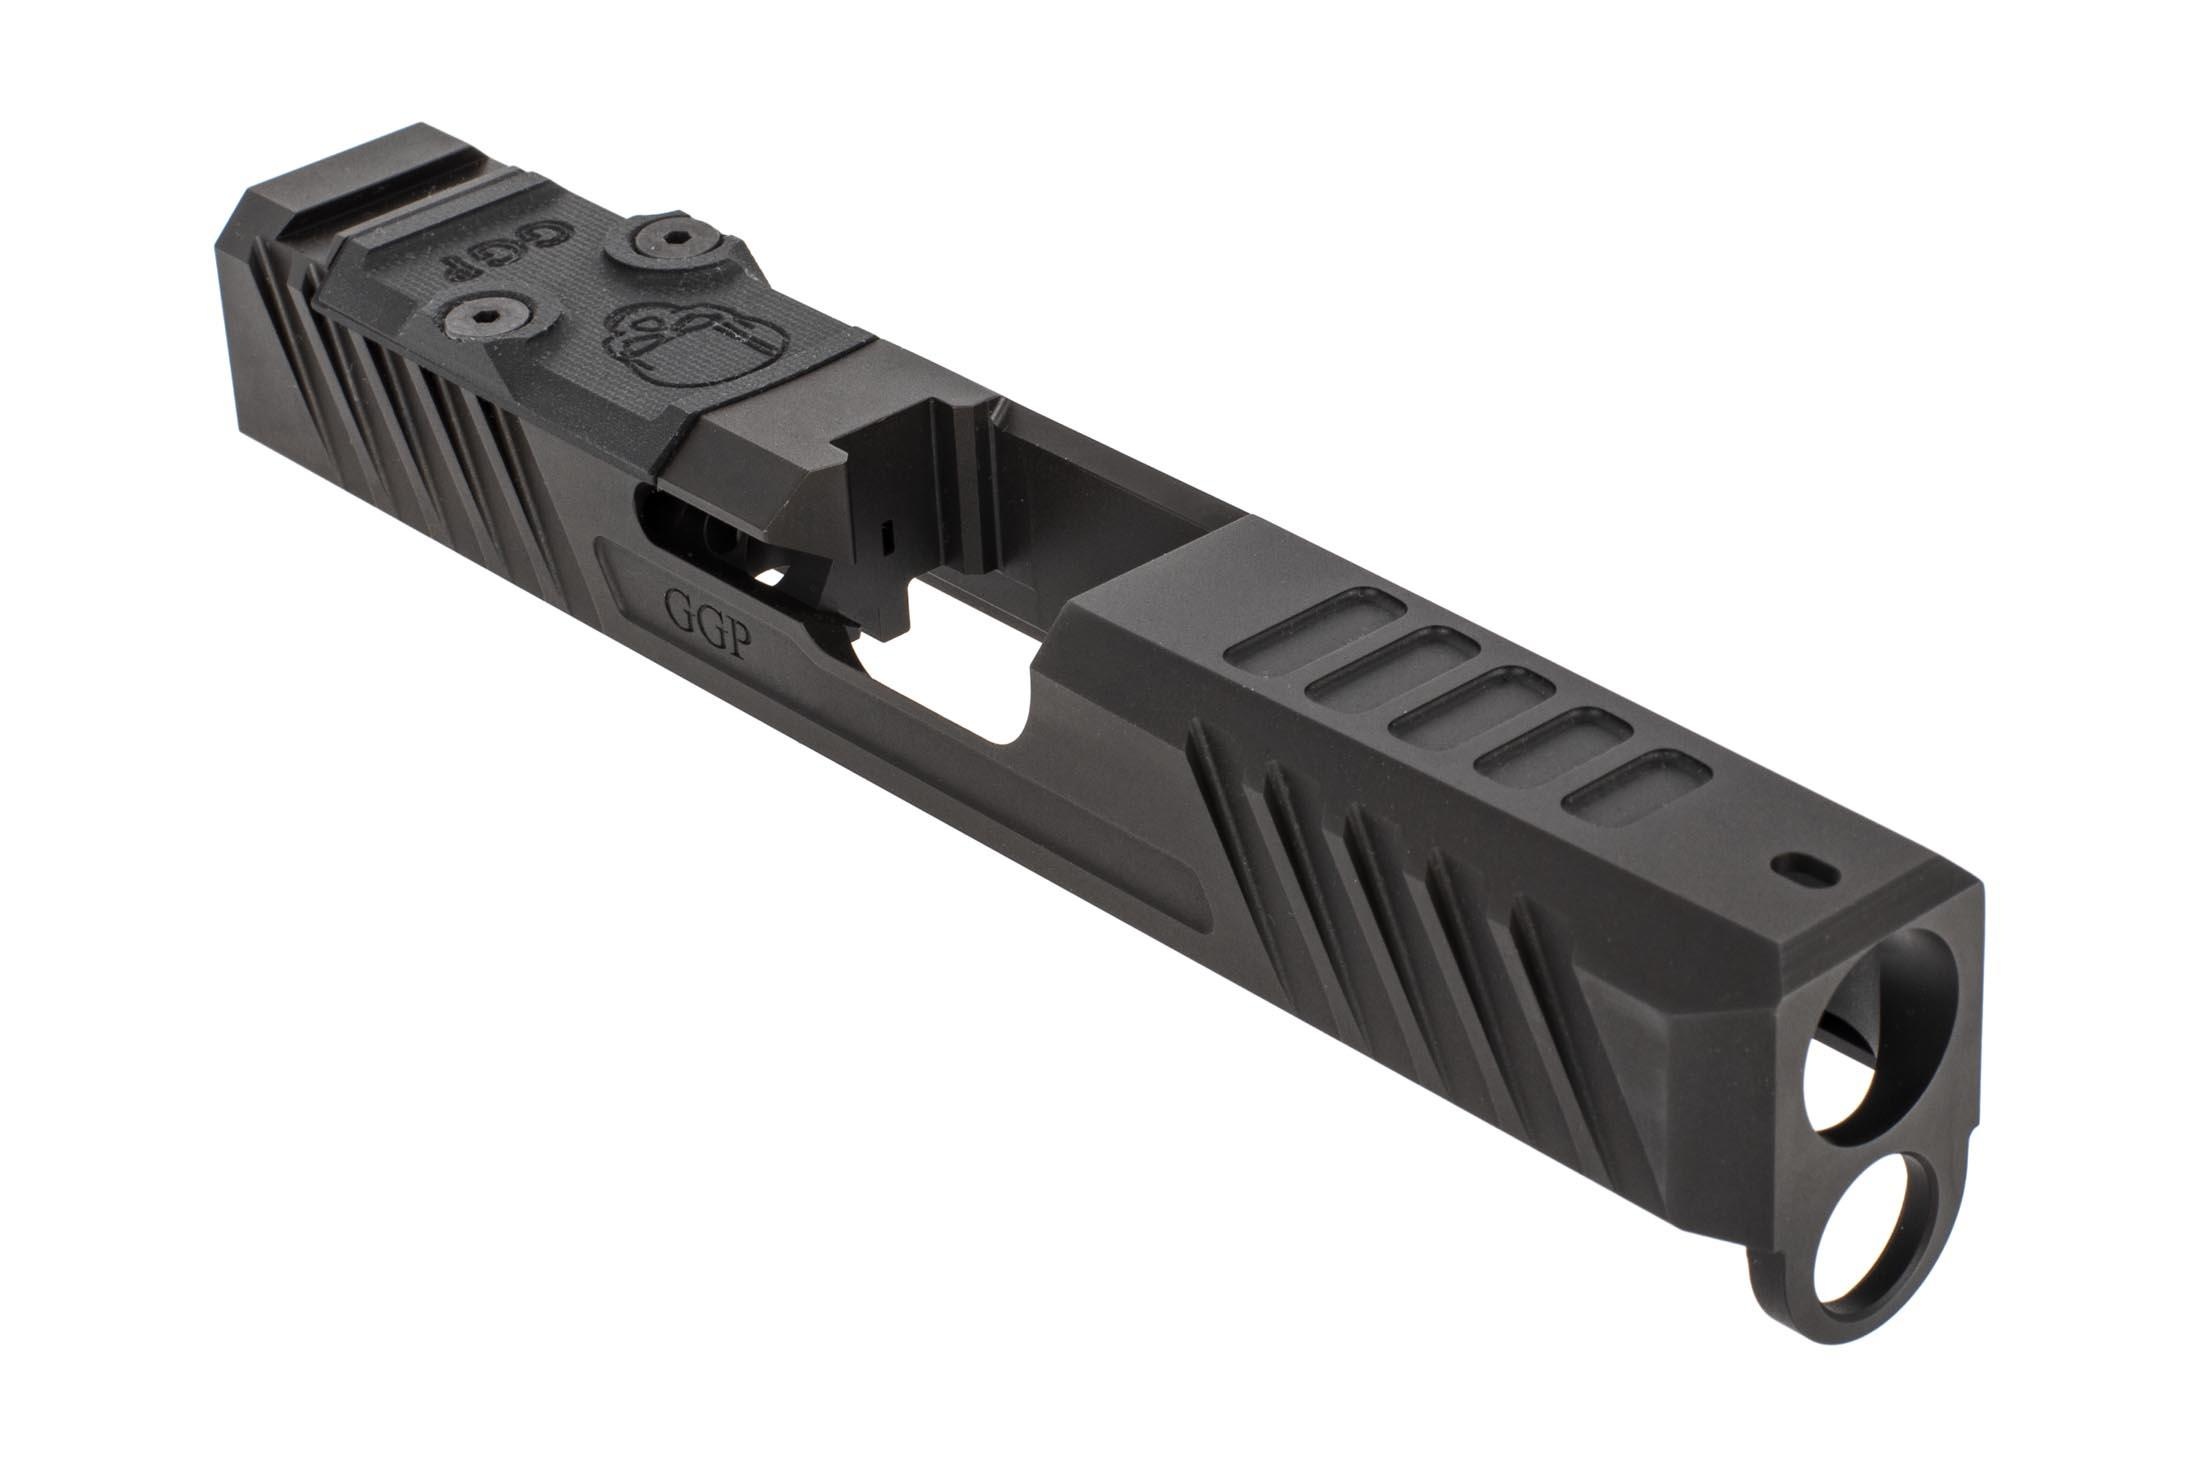 Grey Ghost Precision Glock 19 Gen4 V3 Slide - Stripped - DeltaPoint Pro/RMR  Dual Optic Cut